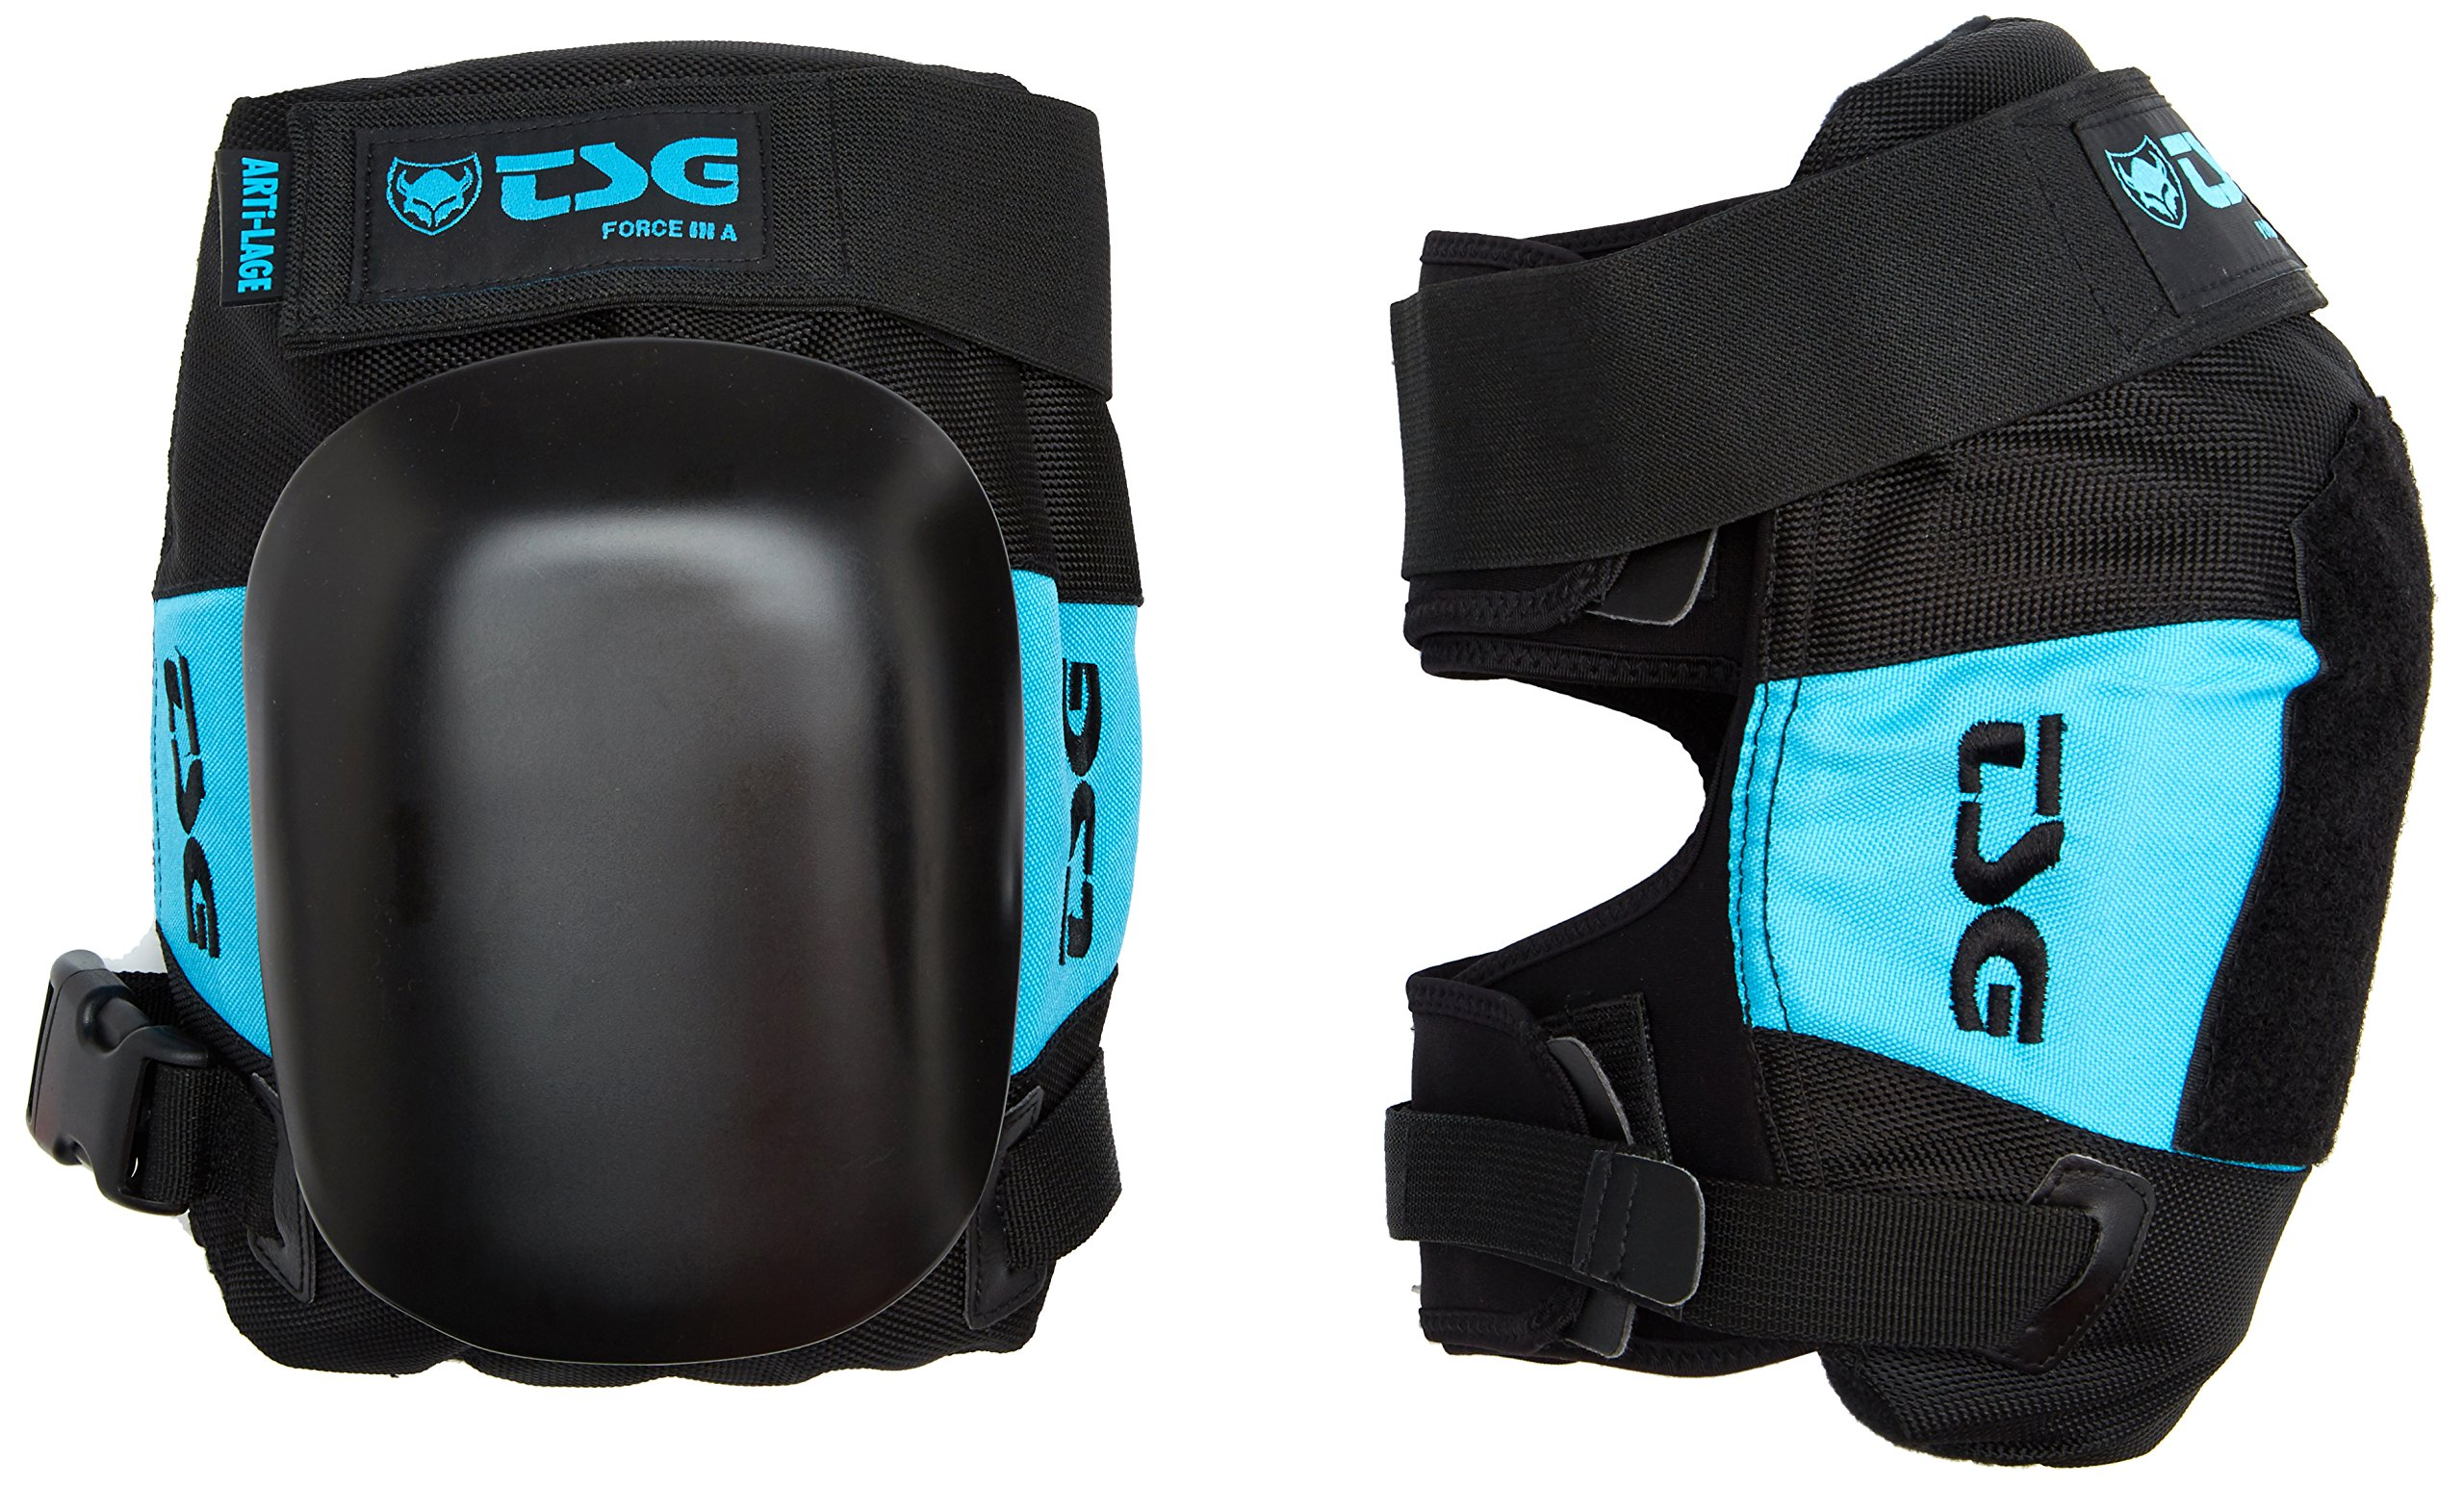 TSG - Kneepad Force III A Pads for Skateboard (Black, L)